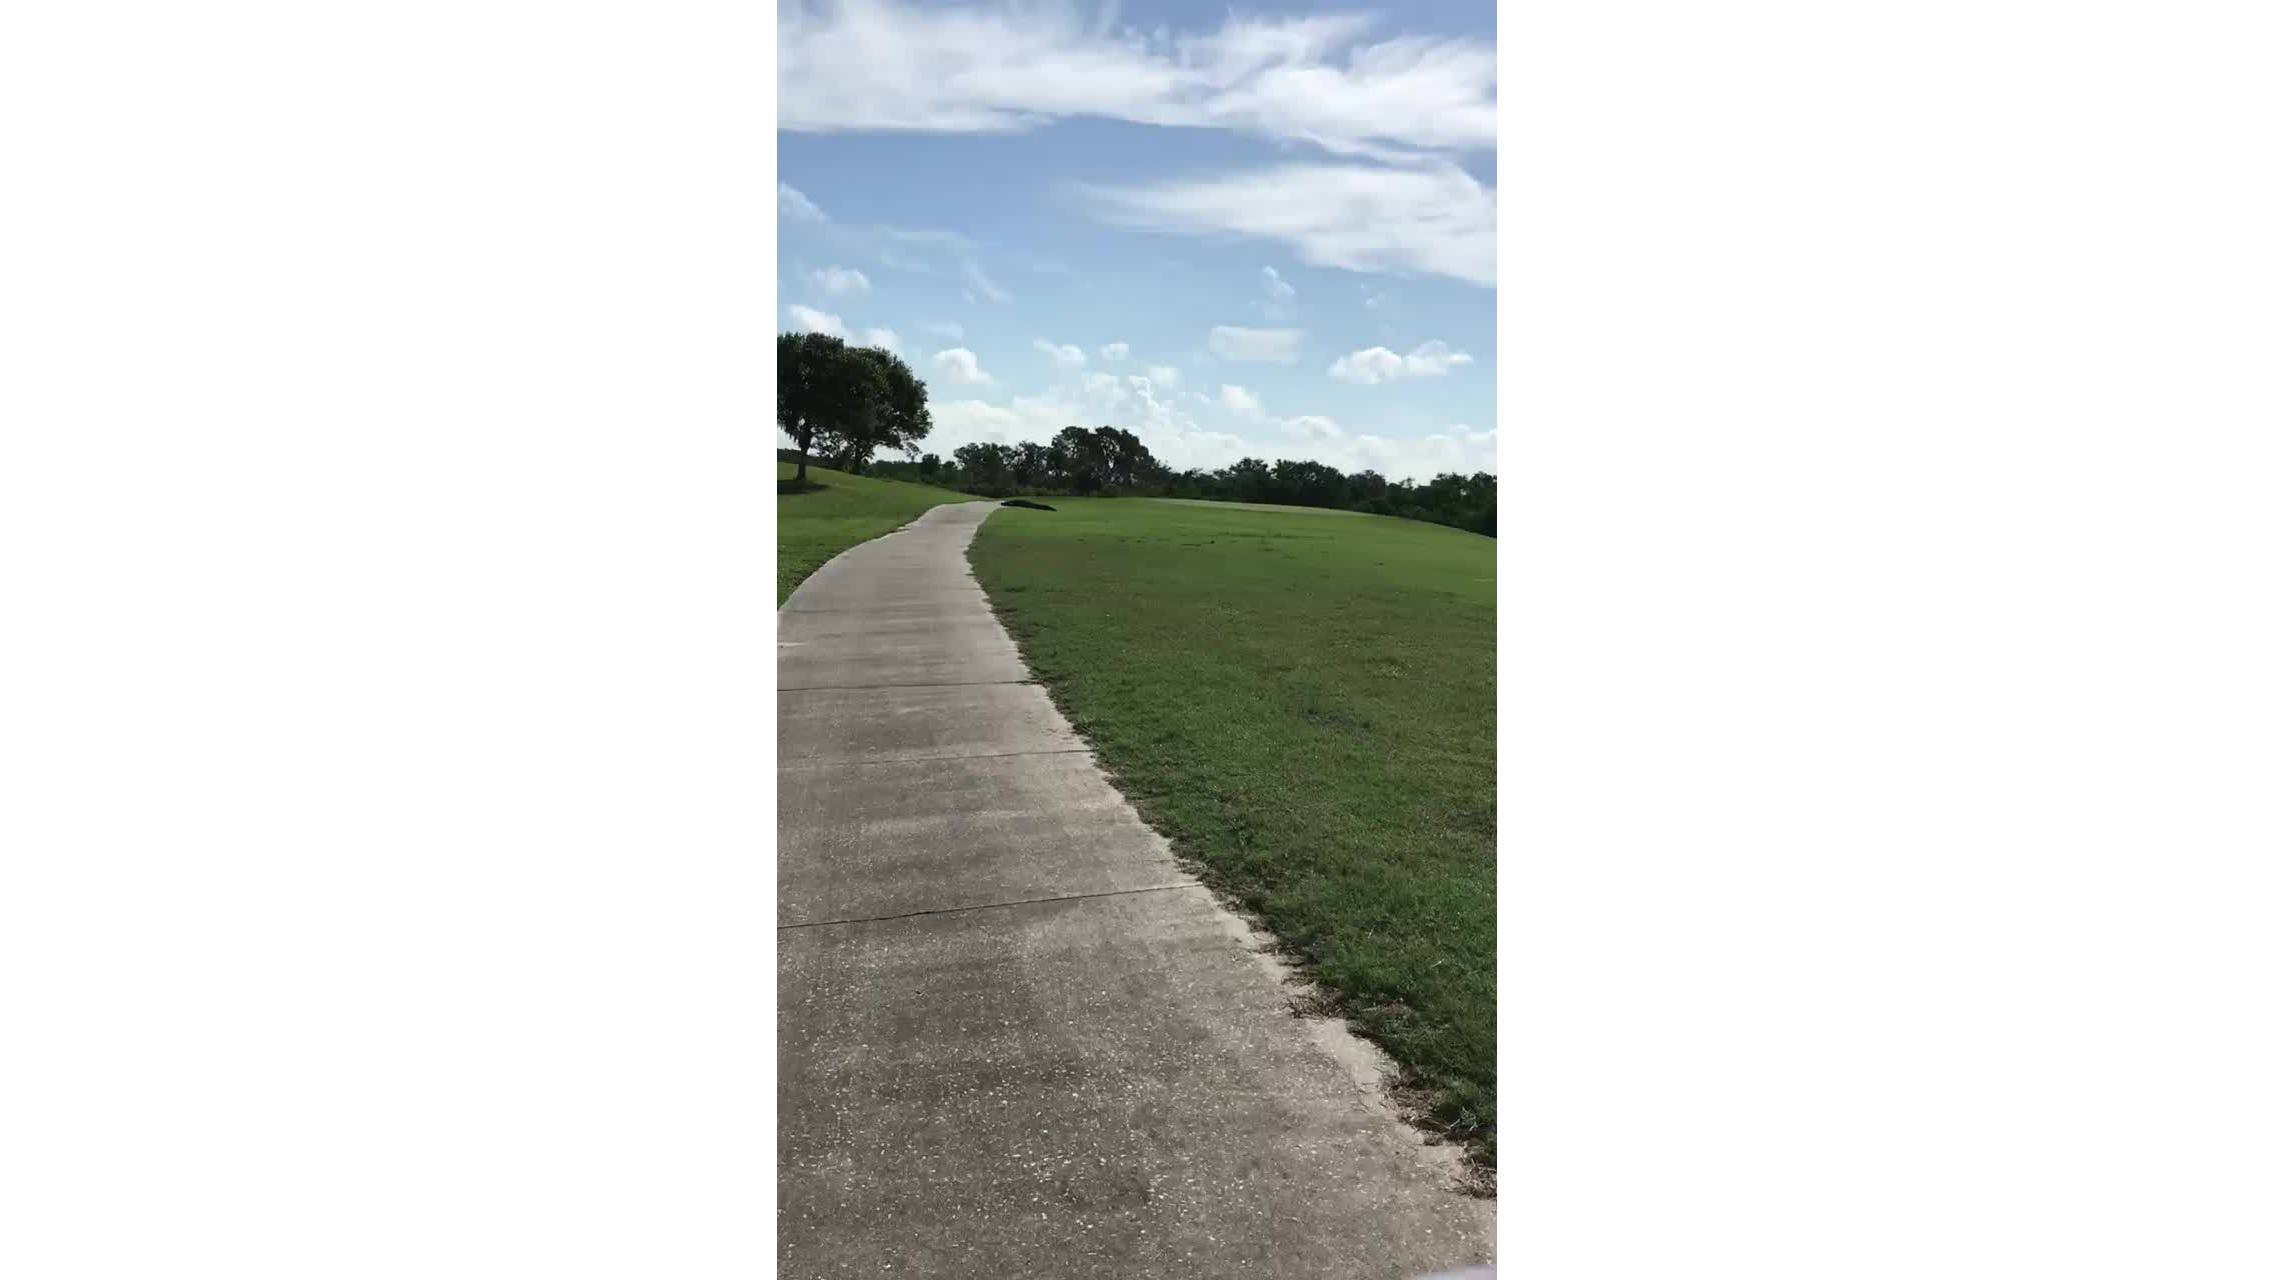 12_foot_gator_spotted_at_MacDill_0_20180831195514